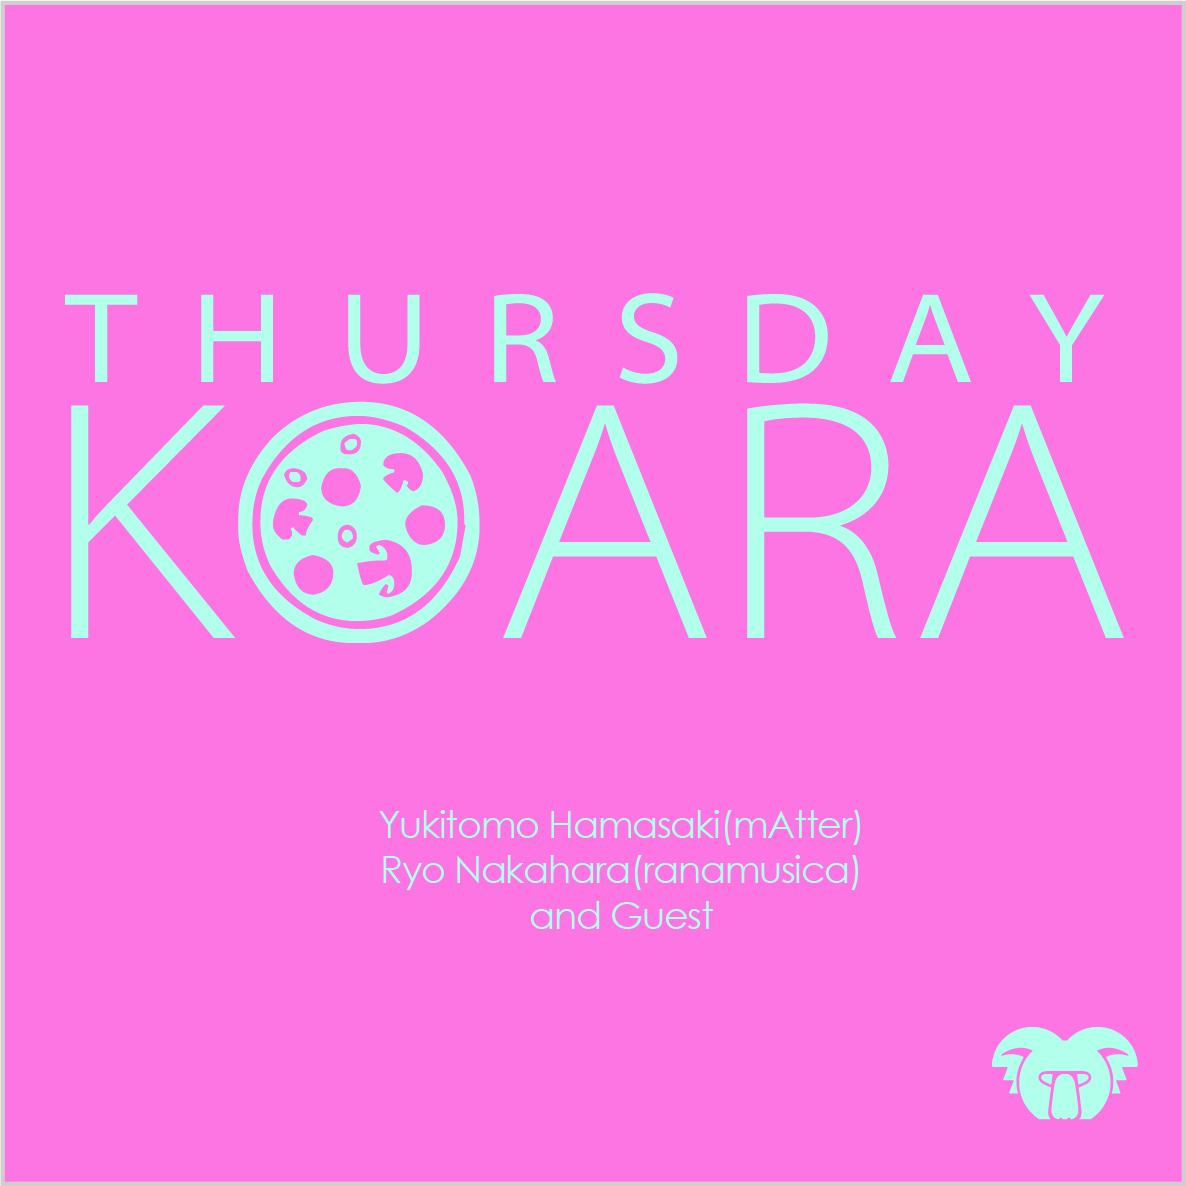 THURSDAY KOARA